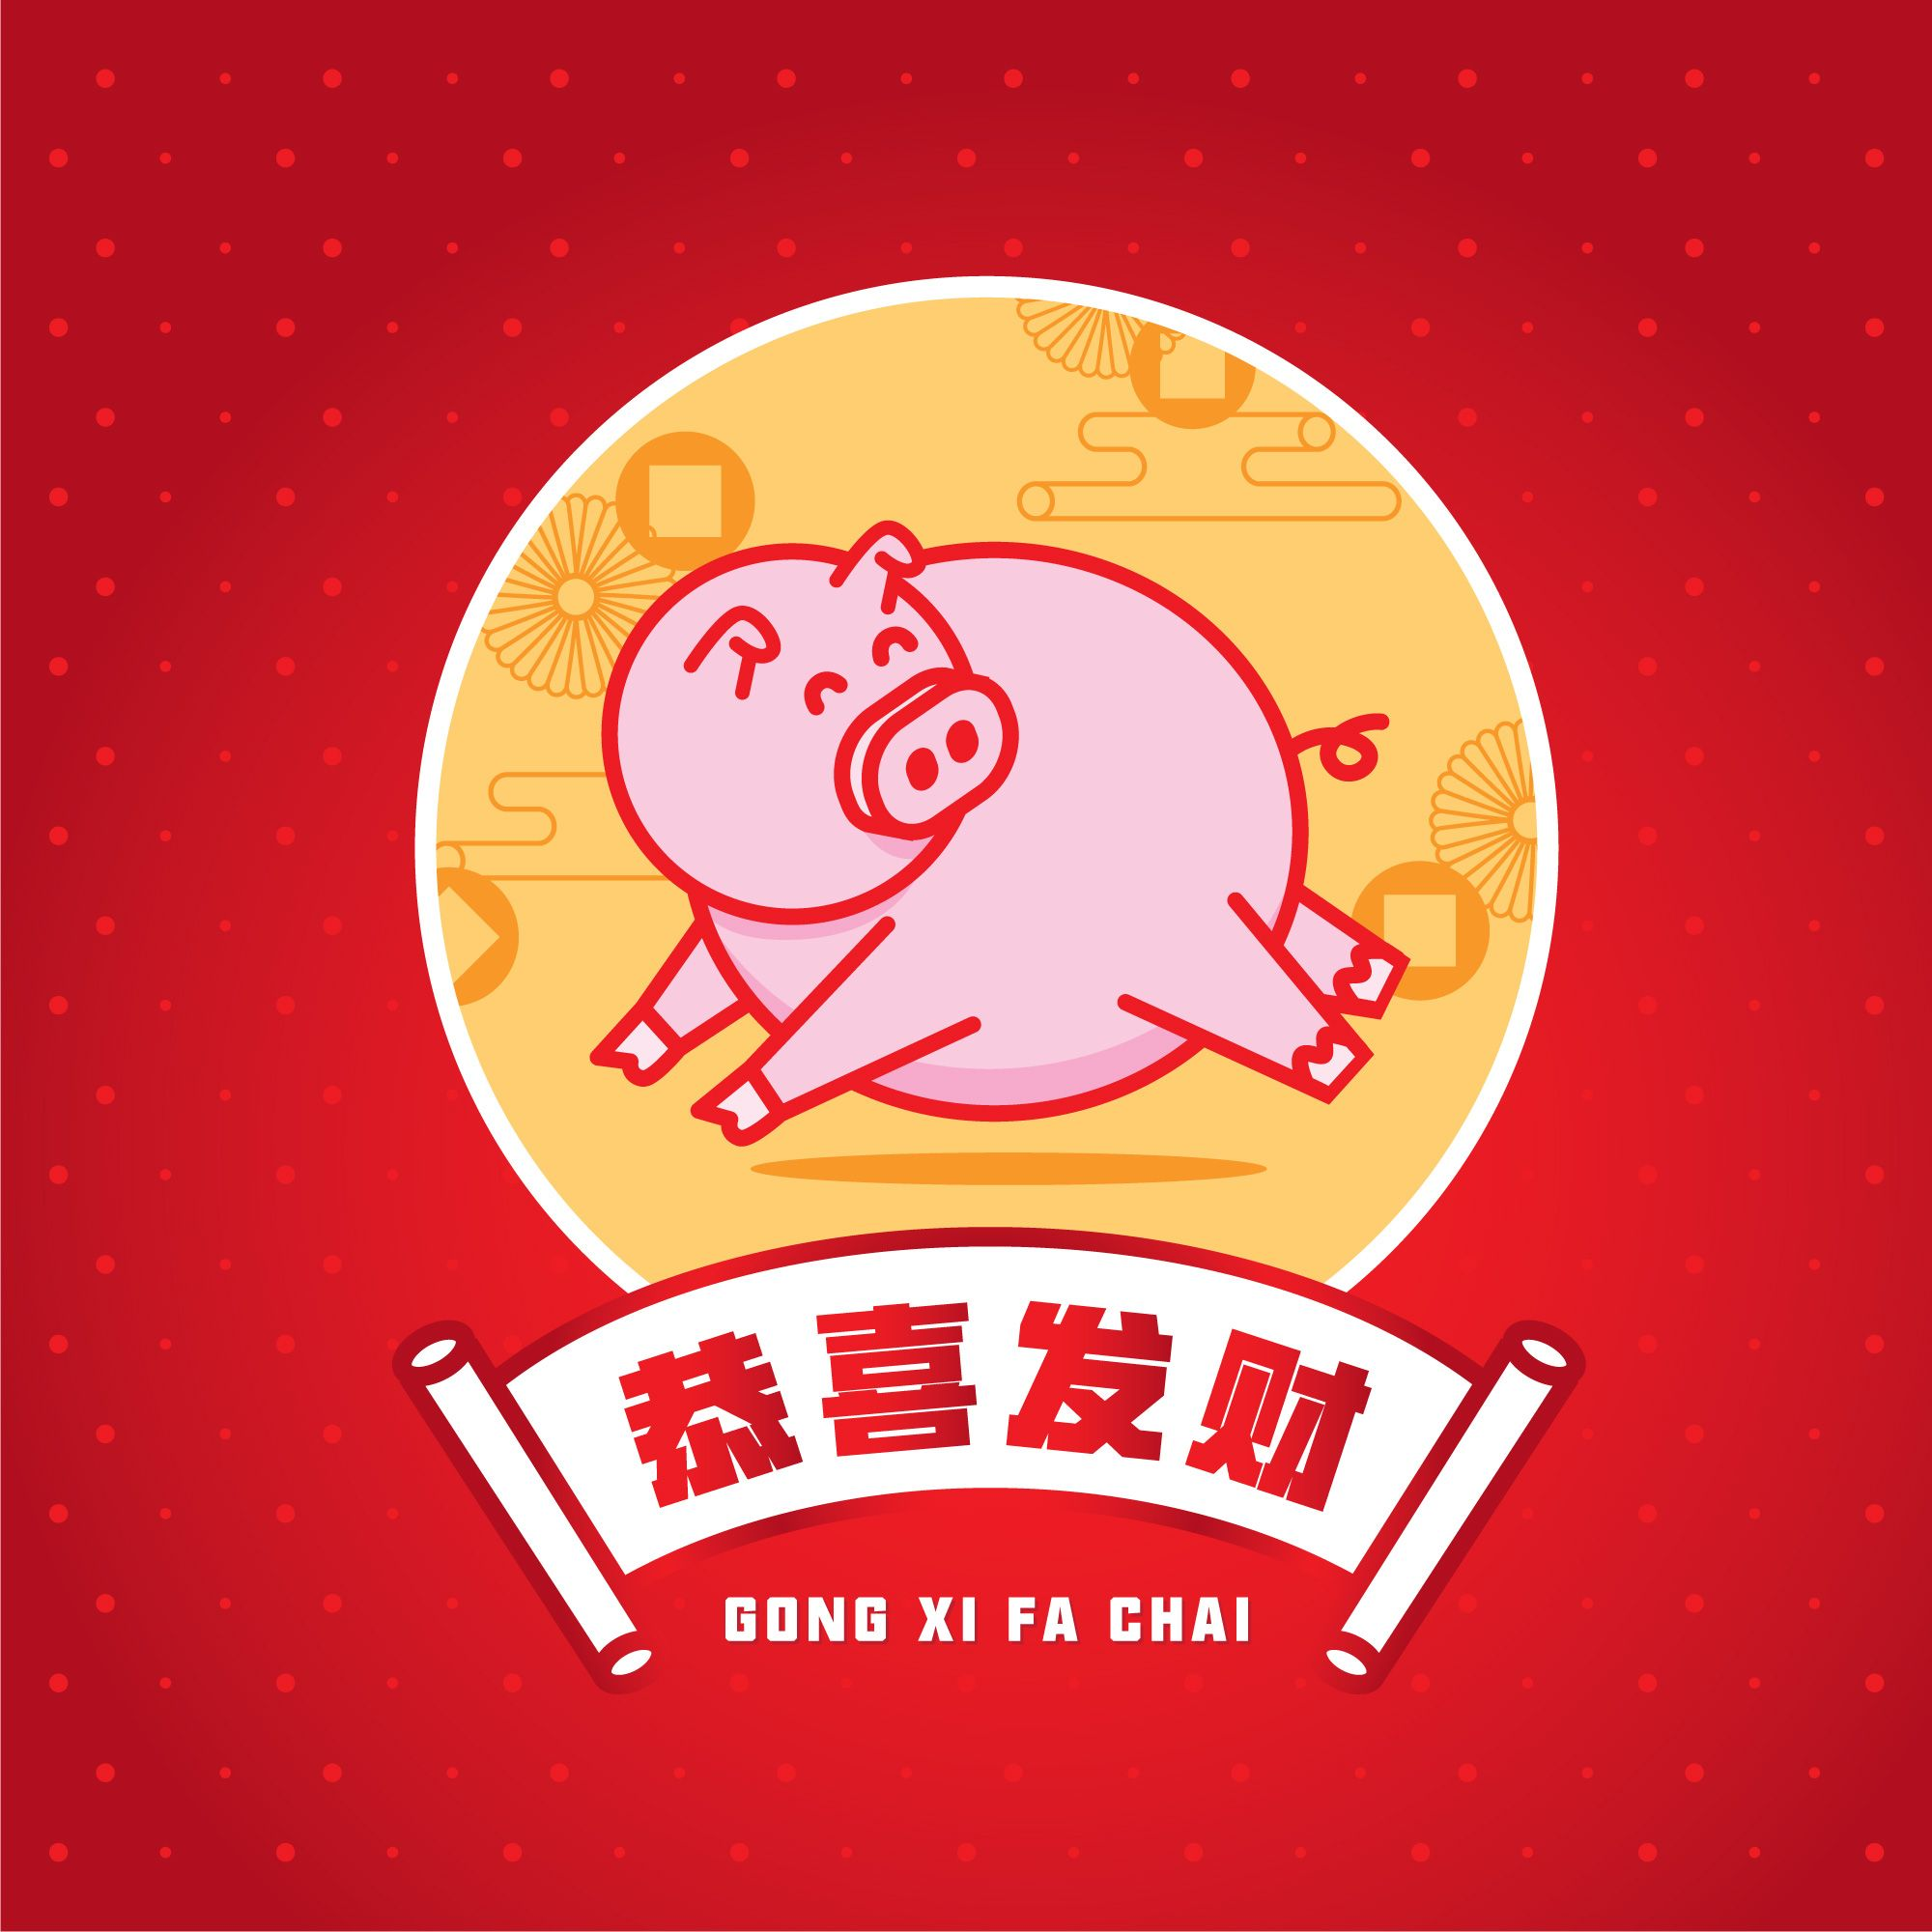 Gong Xi Fa Chai. Happy Year of the Pig. Year of the pig